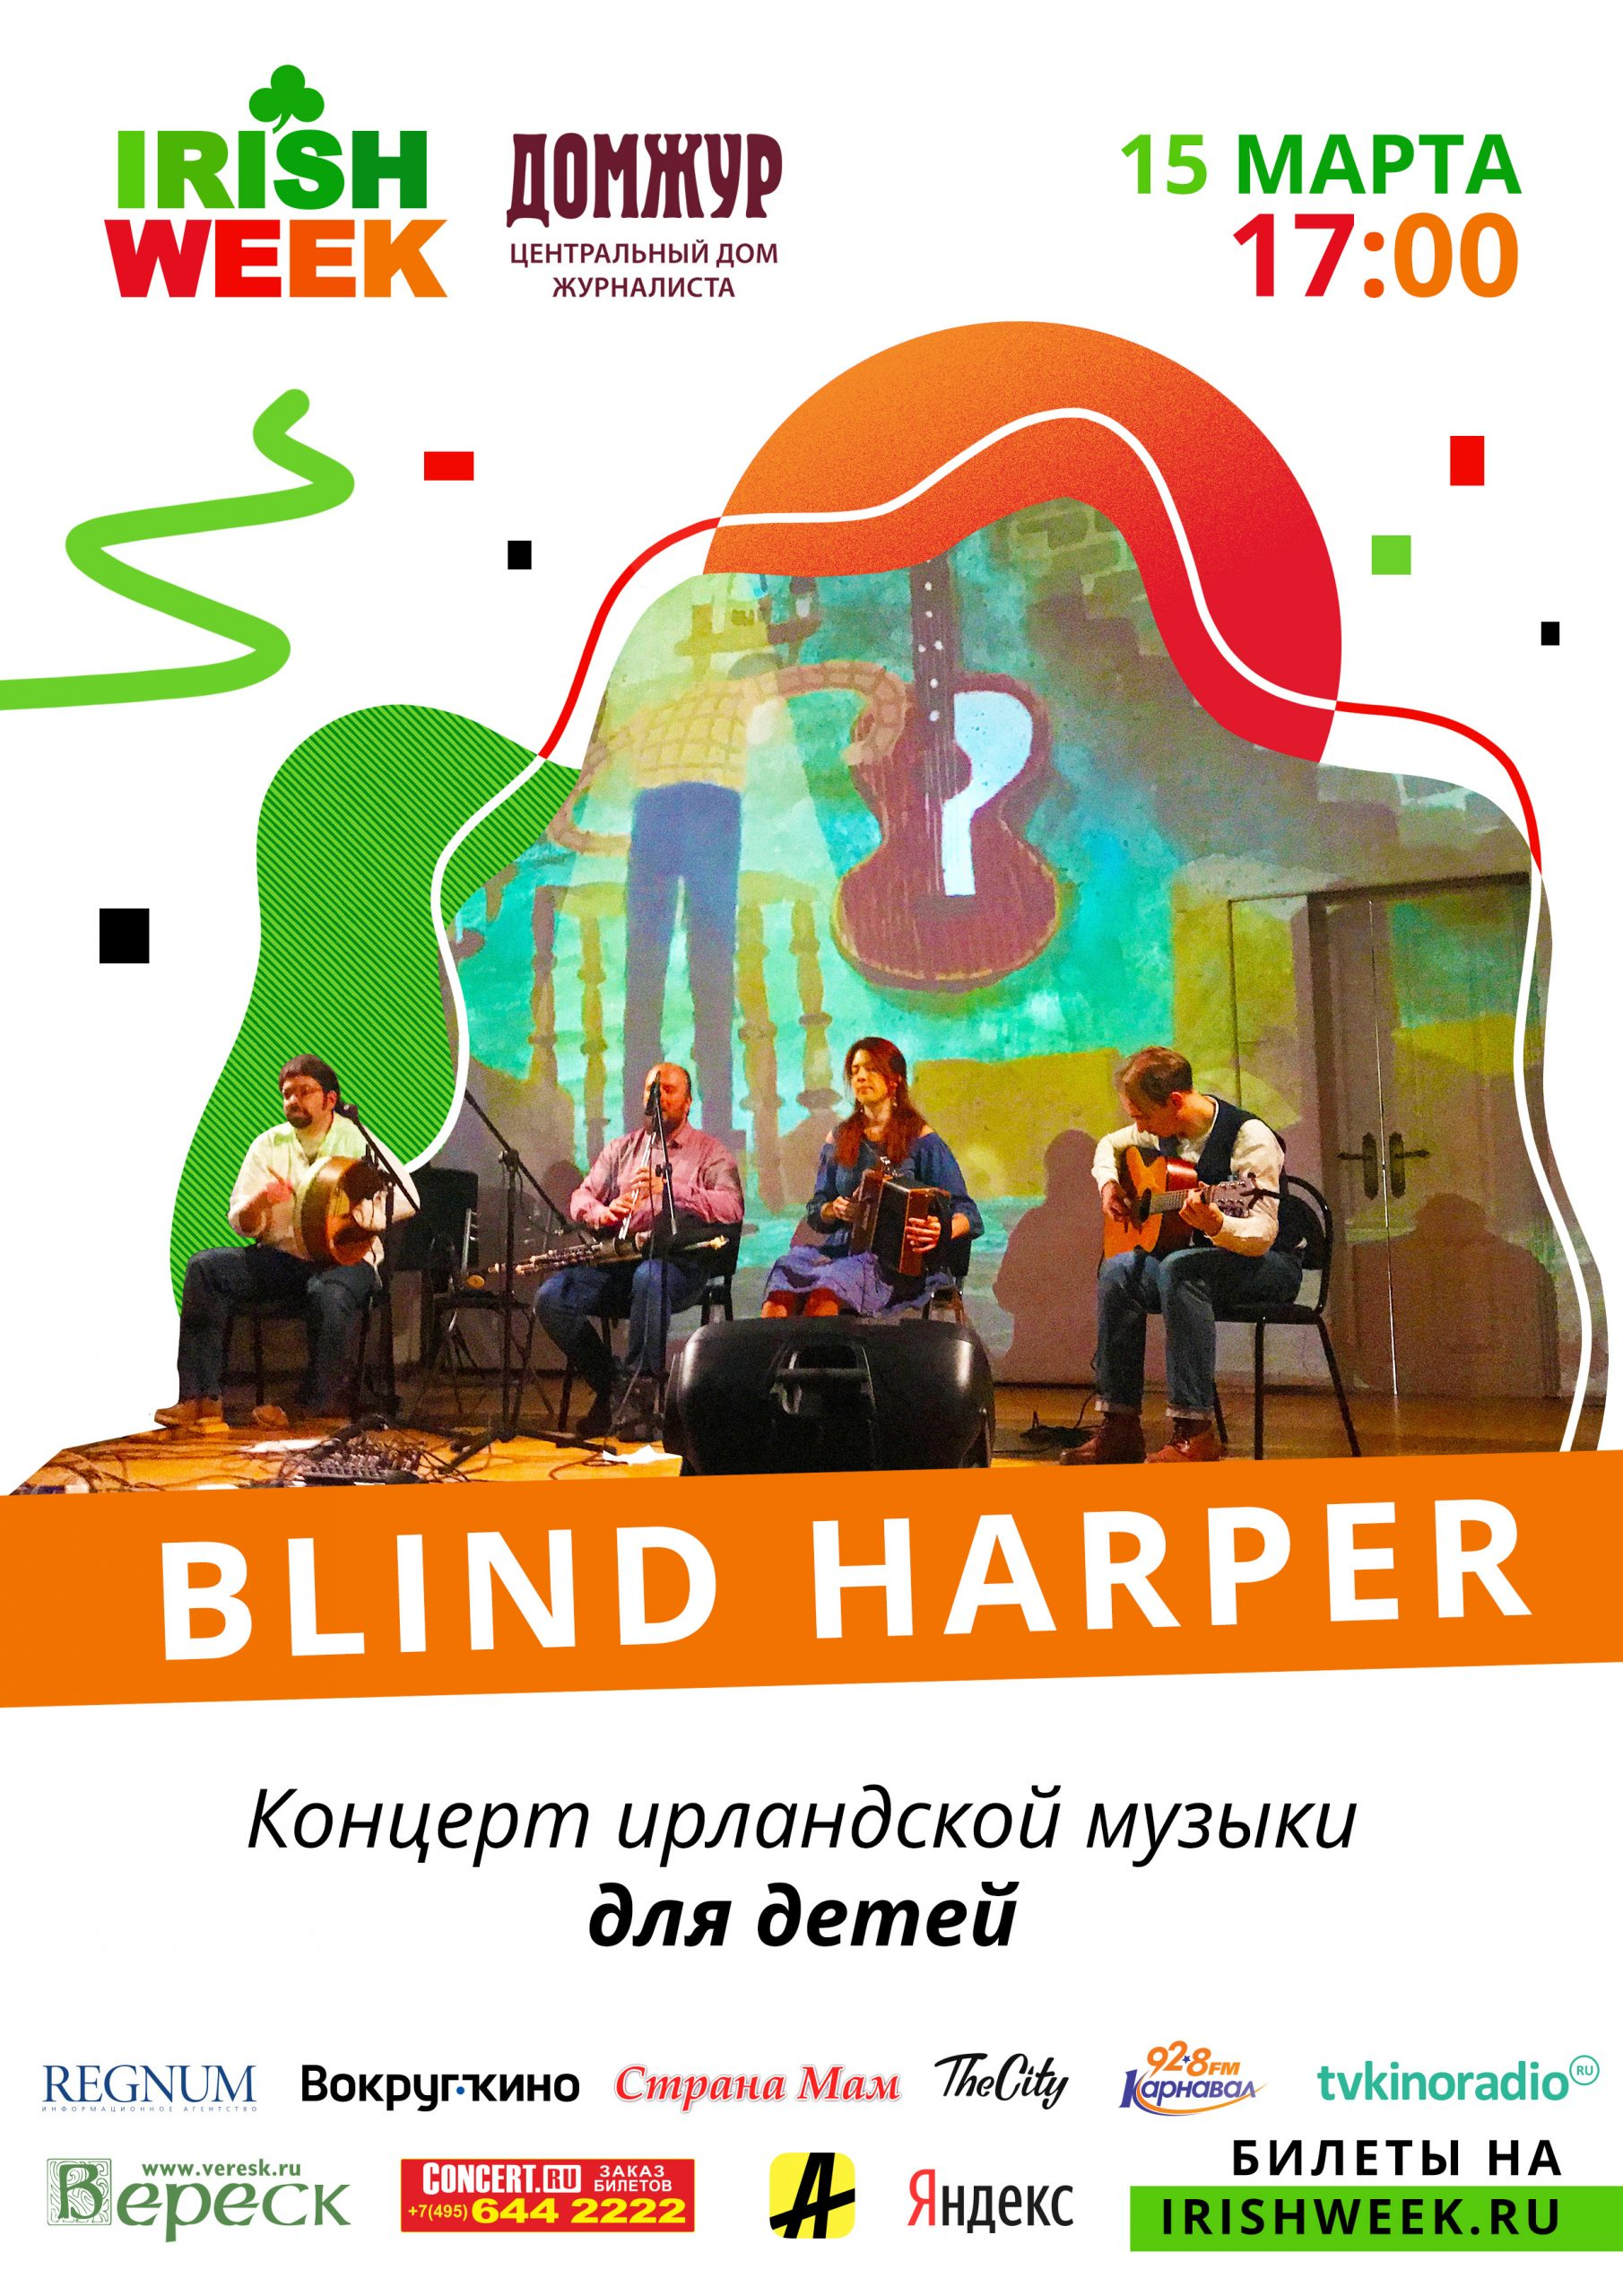 IRISH WEEK 2020 в Доме Журналиста 1